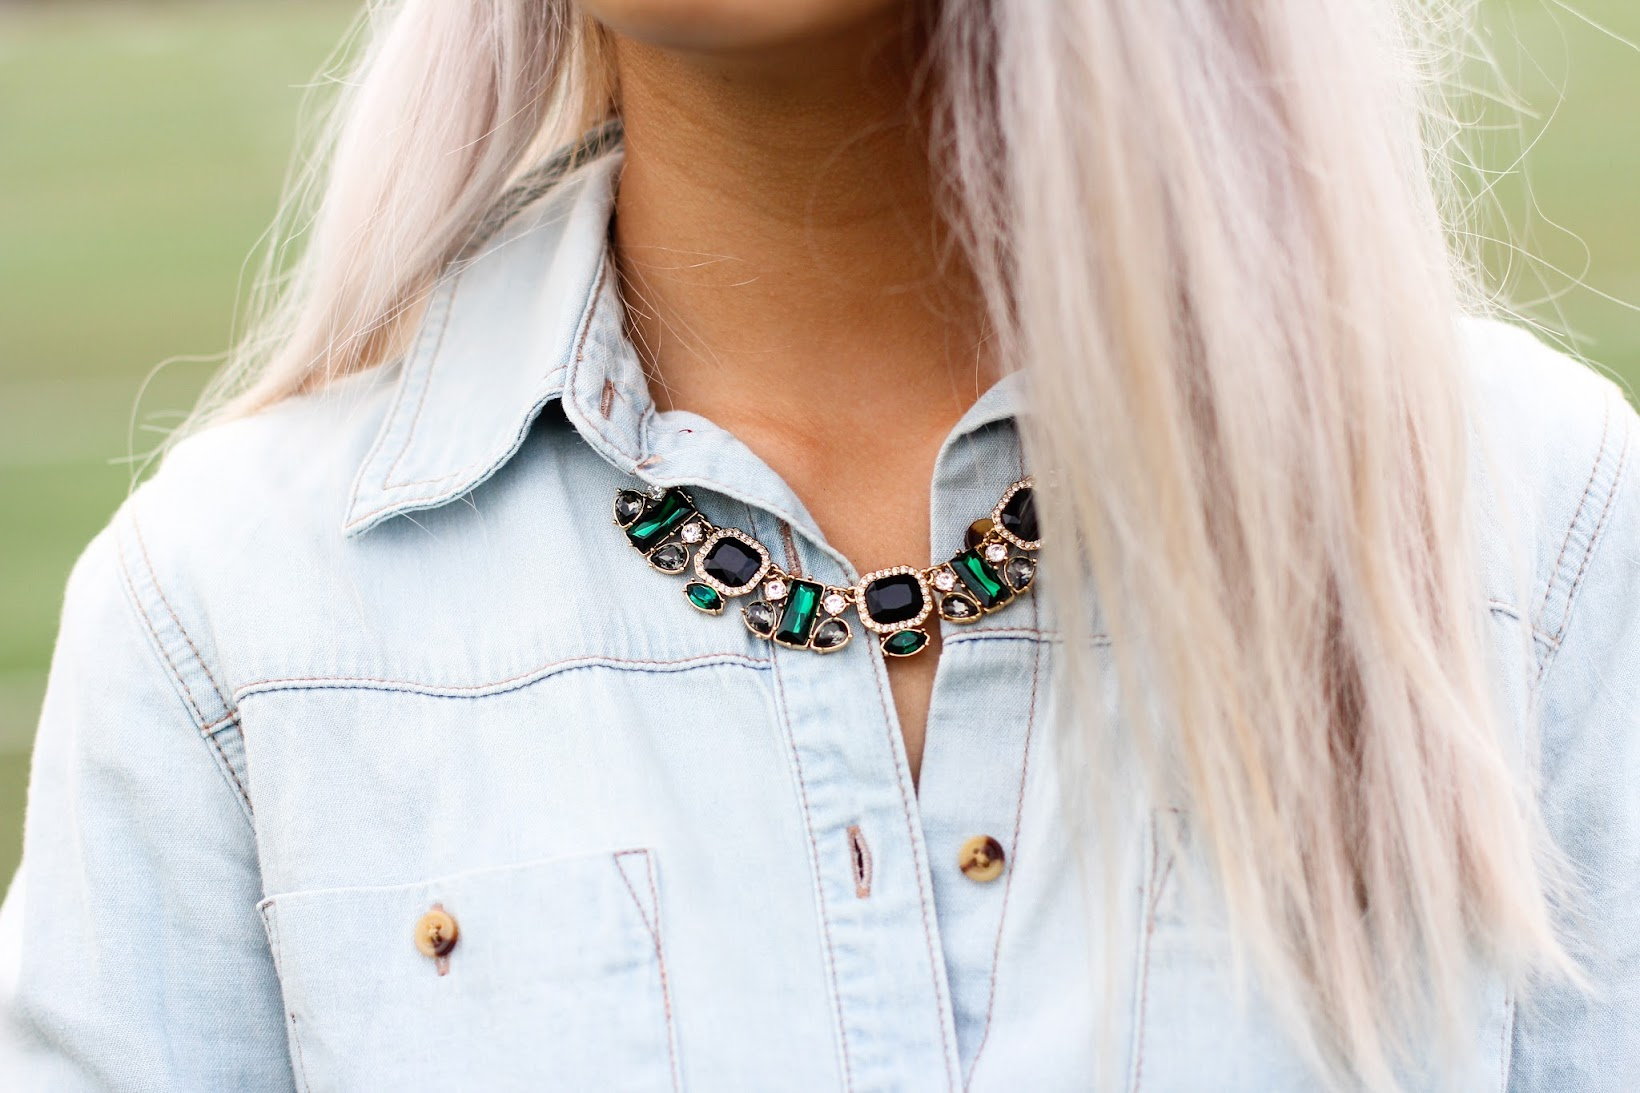 A green J.Crew statement necklace tucked under the collar.